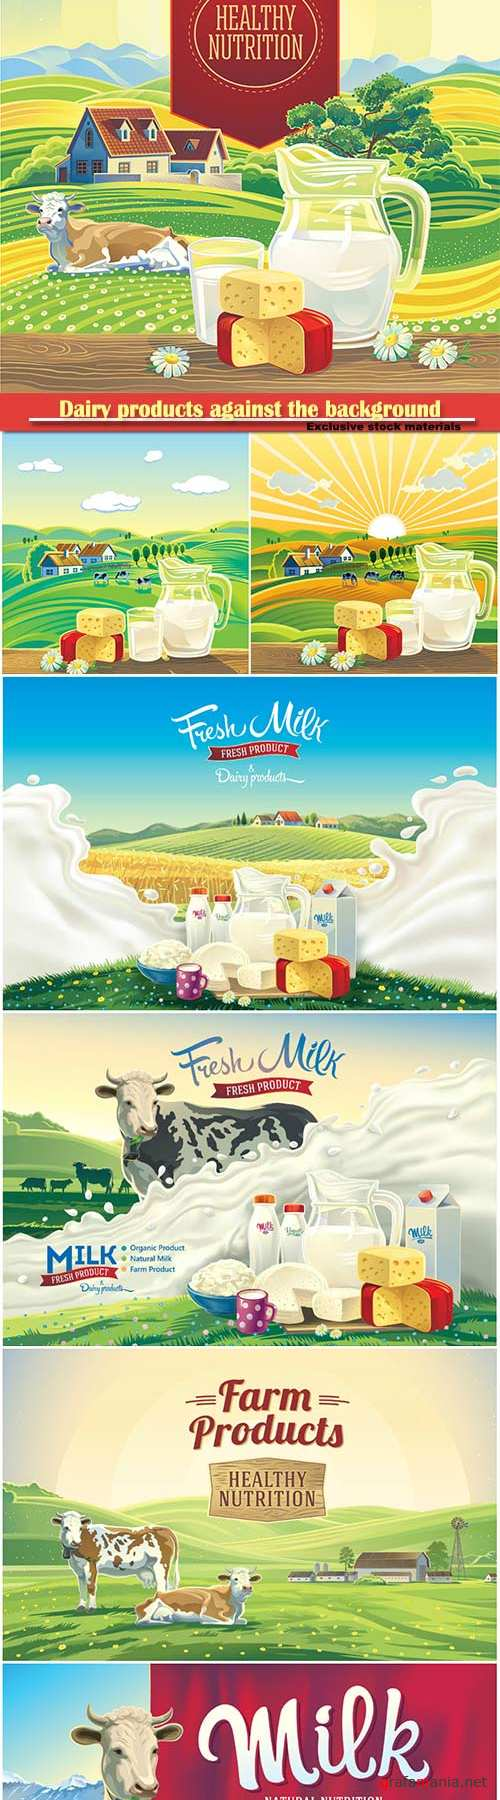 Dairy products against the background rural landscape with cow